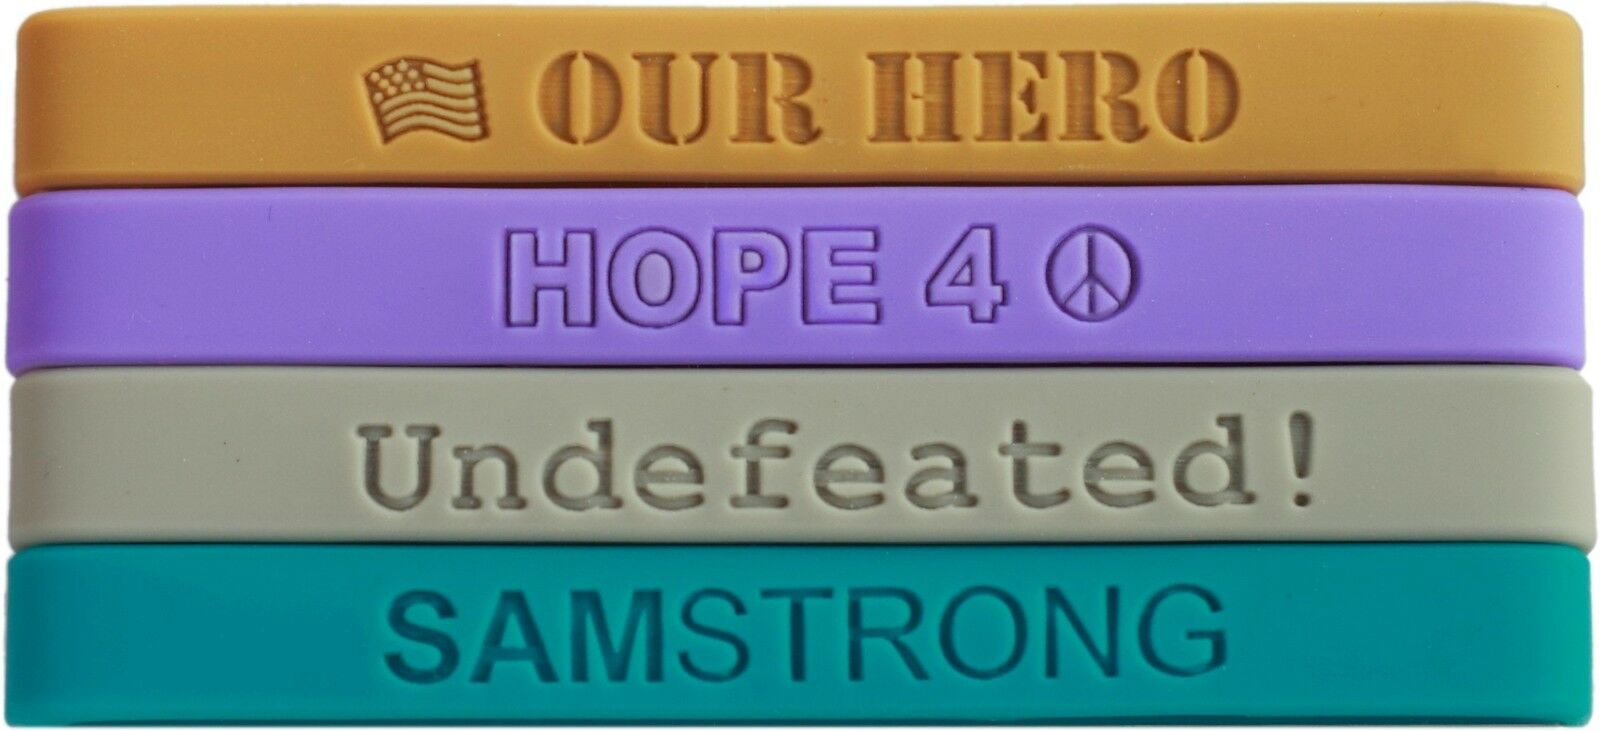 500 silicone wristbands - FREE free TEXT and FREE - IMAGES 65a543